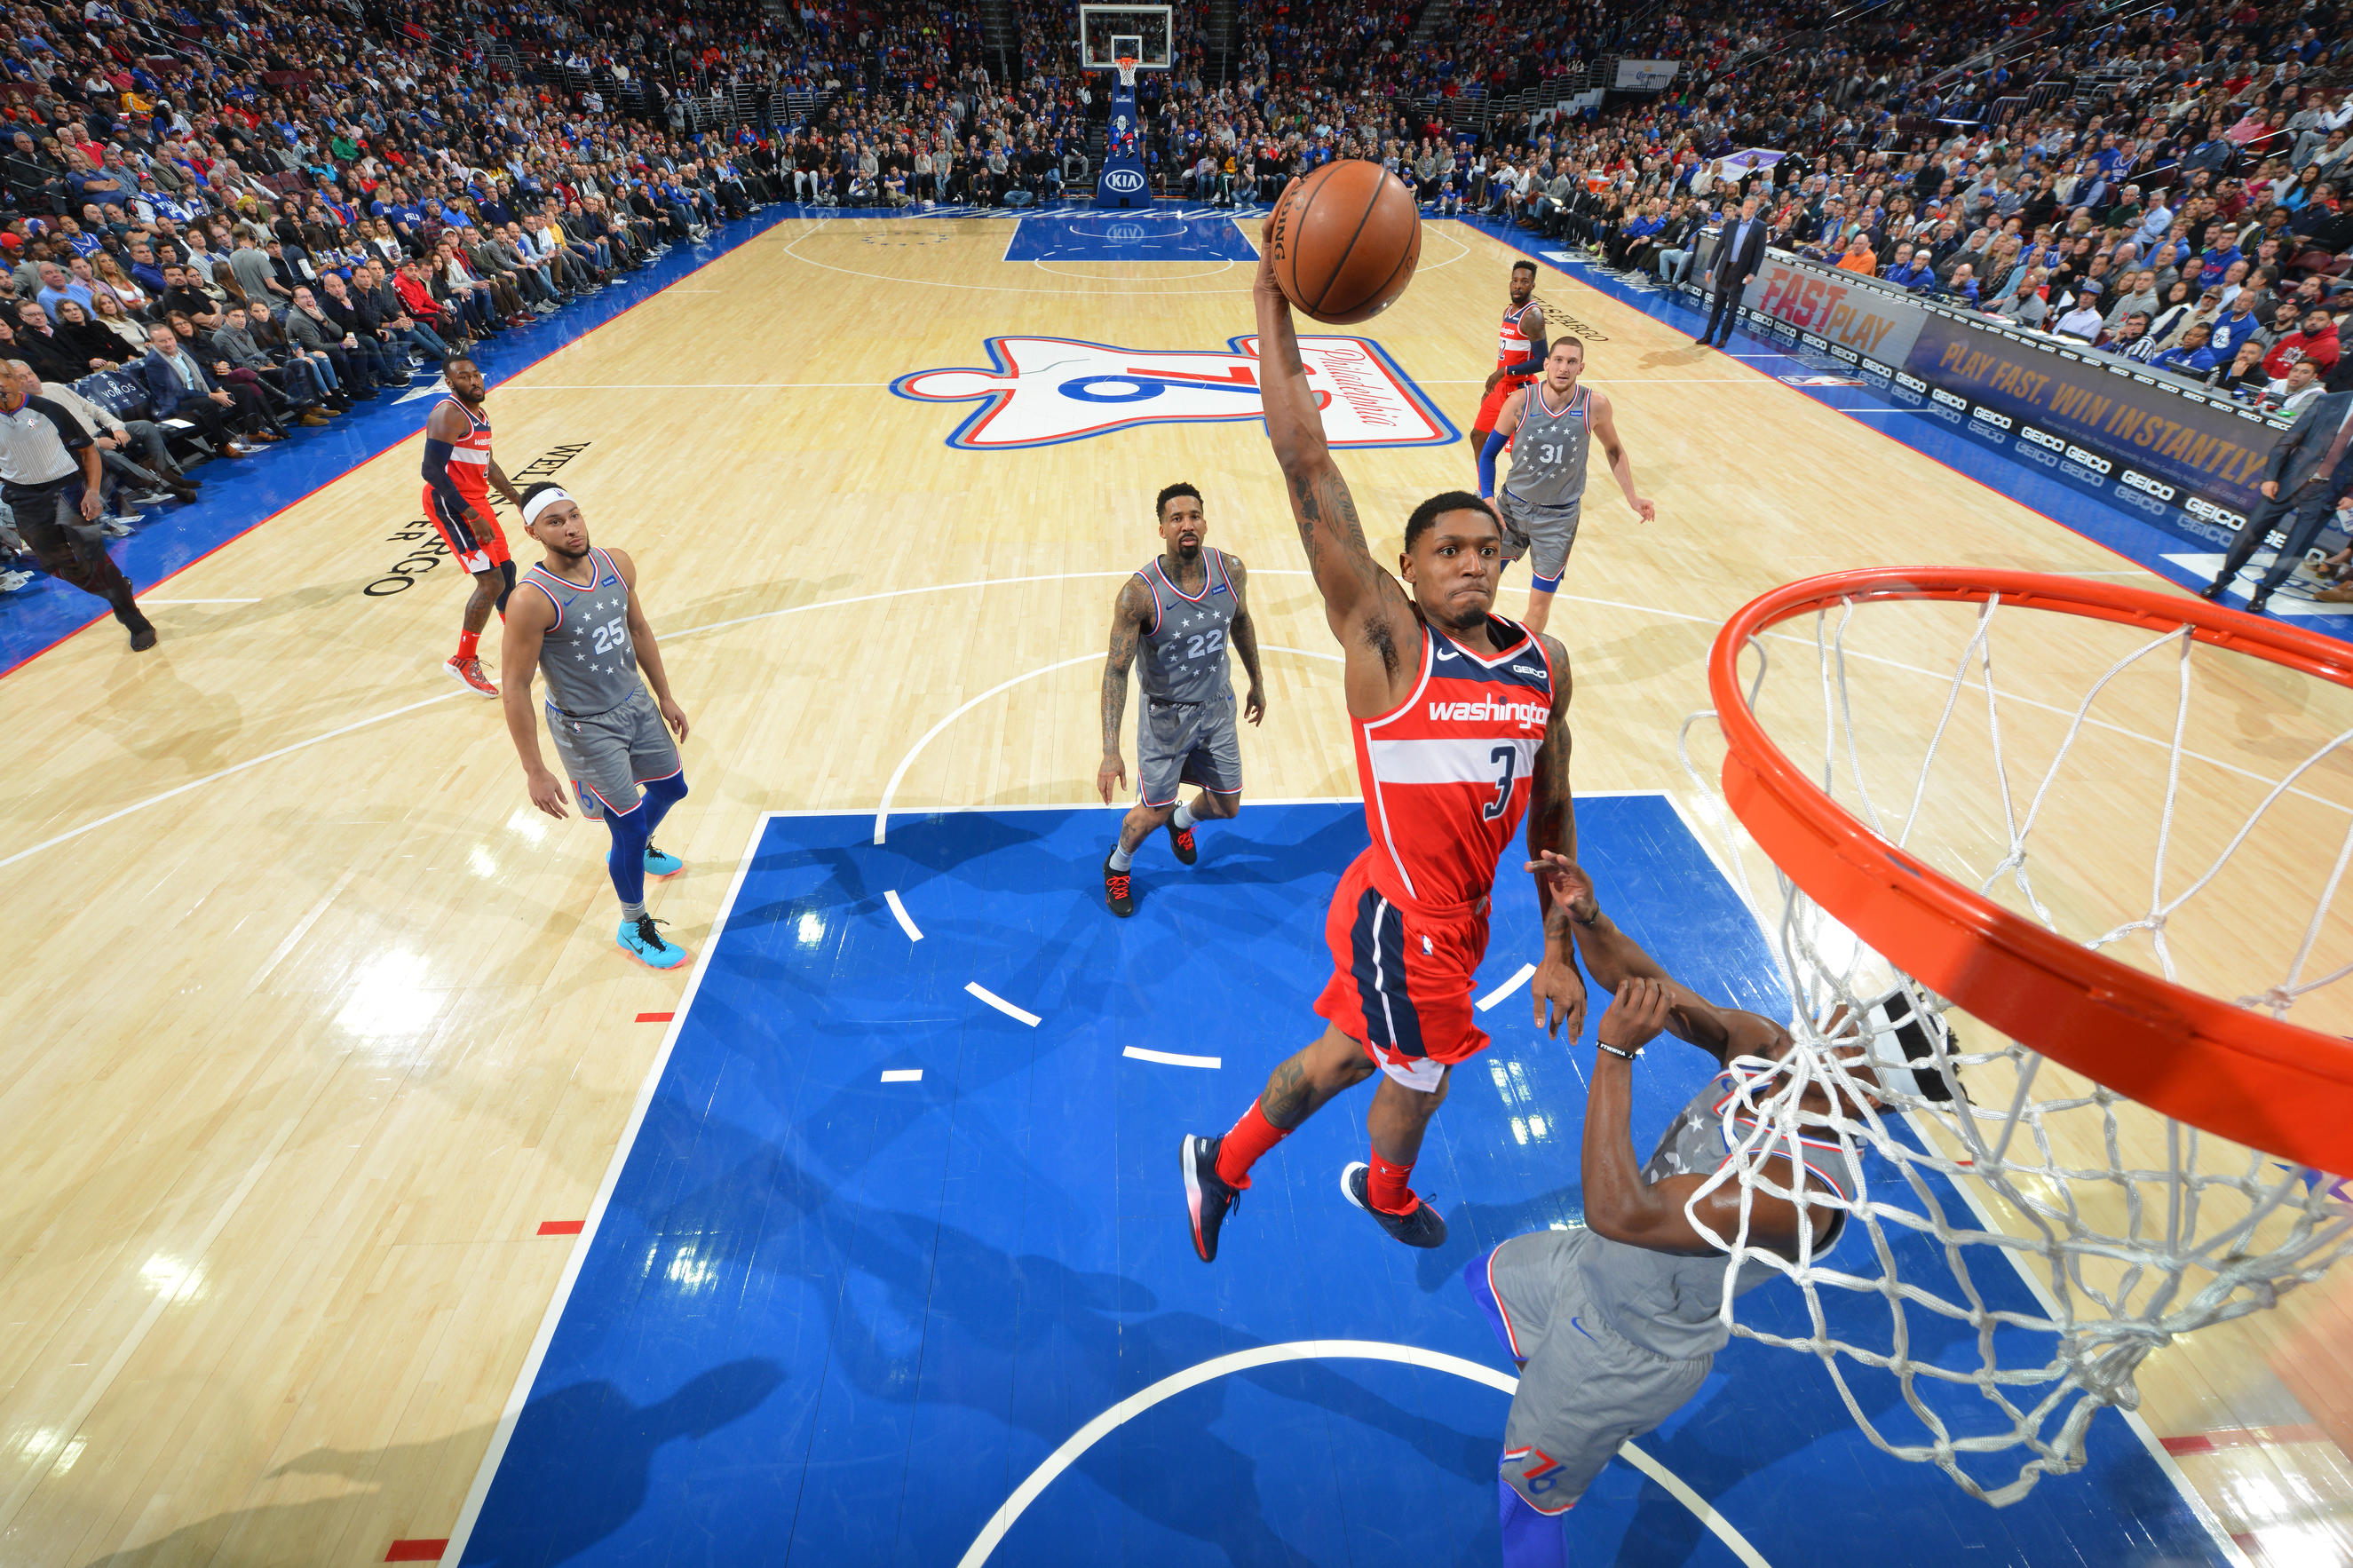 Sixers cruise past Wizards in Philly 123-98